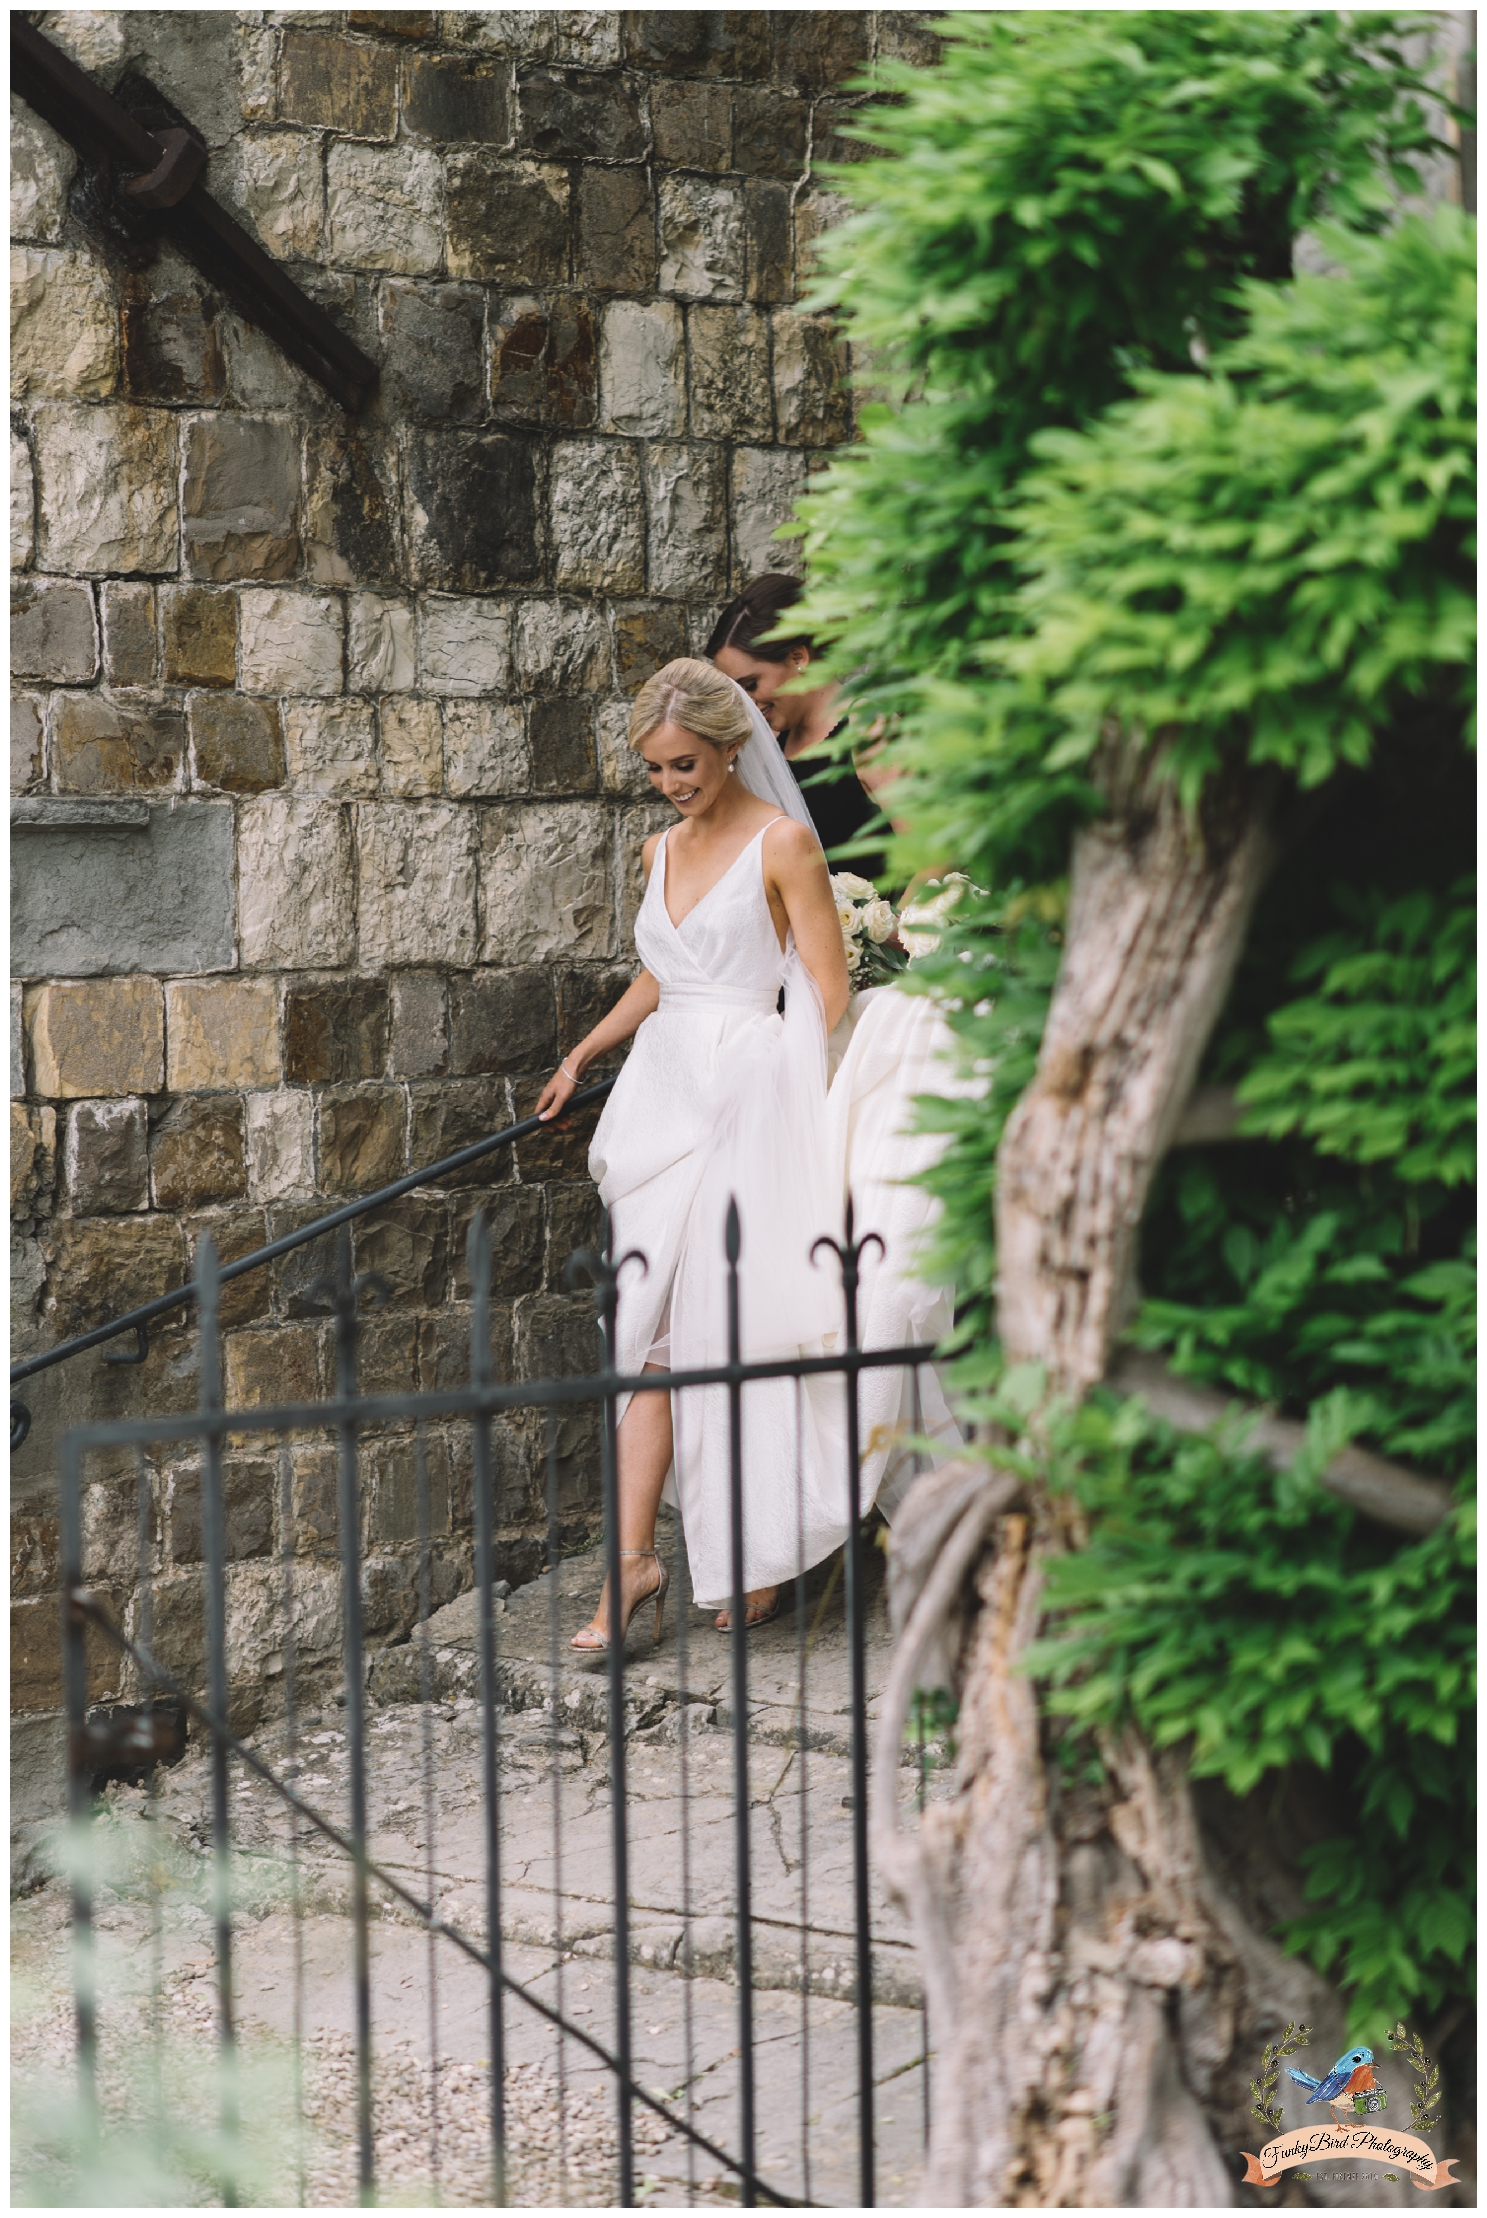 Wedding_Photographer_Tuscany_Italy_0029.jpg